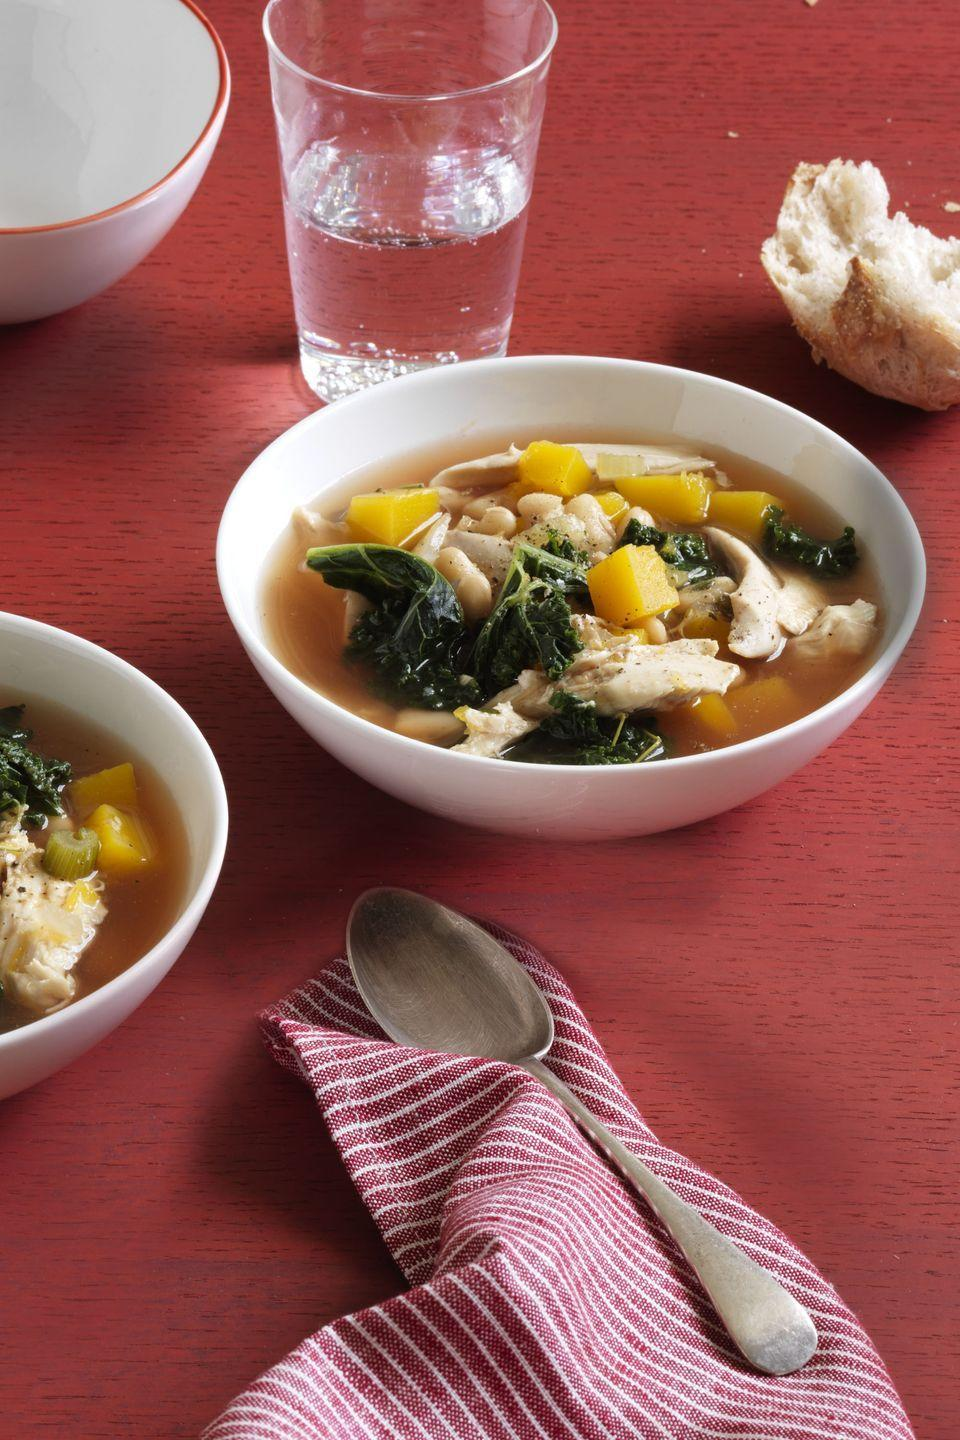 """<p>Substitute the chicken with leftover turkey for the ultimate day-after-Thanksgiving soup.</p><p><em><a href=""""https://www.goodhousekeeping.com/food-recipes/a15711/kale-white-bean-butternut-squash-soup-recipe-wdy0214/"""" rel=""""nofollow noopener"""" target=""""_blank"""" data-ylk=""""slk:Get the recipe for Kale, White Bean, and Butternut Squash Soup »"""" class=""""link rapid-noclick-resp"""">Get the recipe for Kale, White Bean, and Butternut Squash Soup »</a></em><strong><br></strong></p><p><strong>RELATED: </strong><a href=""""https://www.goodhousekeeping.com/holidays/thanksgiving-ideas/g1471/leftover-turkey-recipes/"""" rel=""""nofollow noopener"""" target=""""_blank"""" data-ylk=""""slk:24 Leftover Turkey Recipes You Can Make in 60 Minutes or Less"""" class=""""link rapid-noclick-resp"""">24 Leftover Turkey Recipes You Can Make in 60 Minutes or Less</a></p>"""